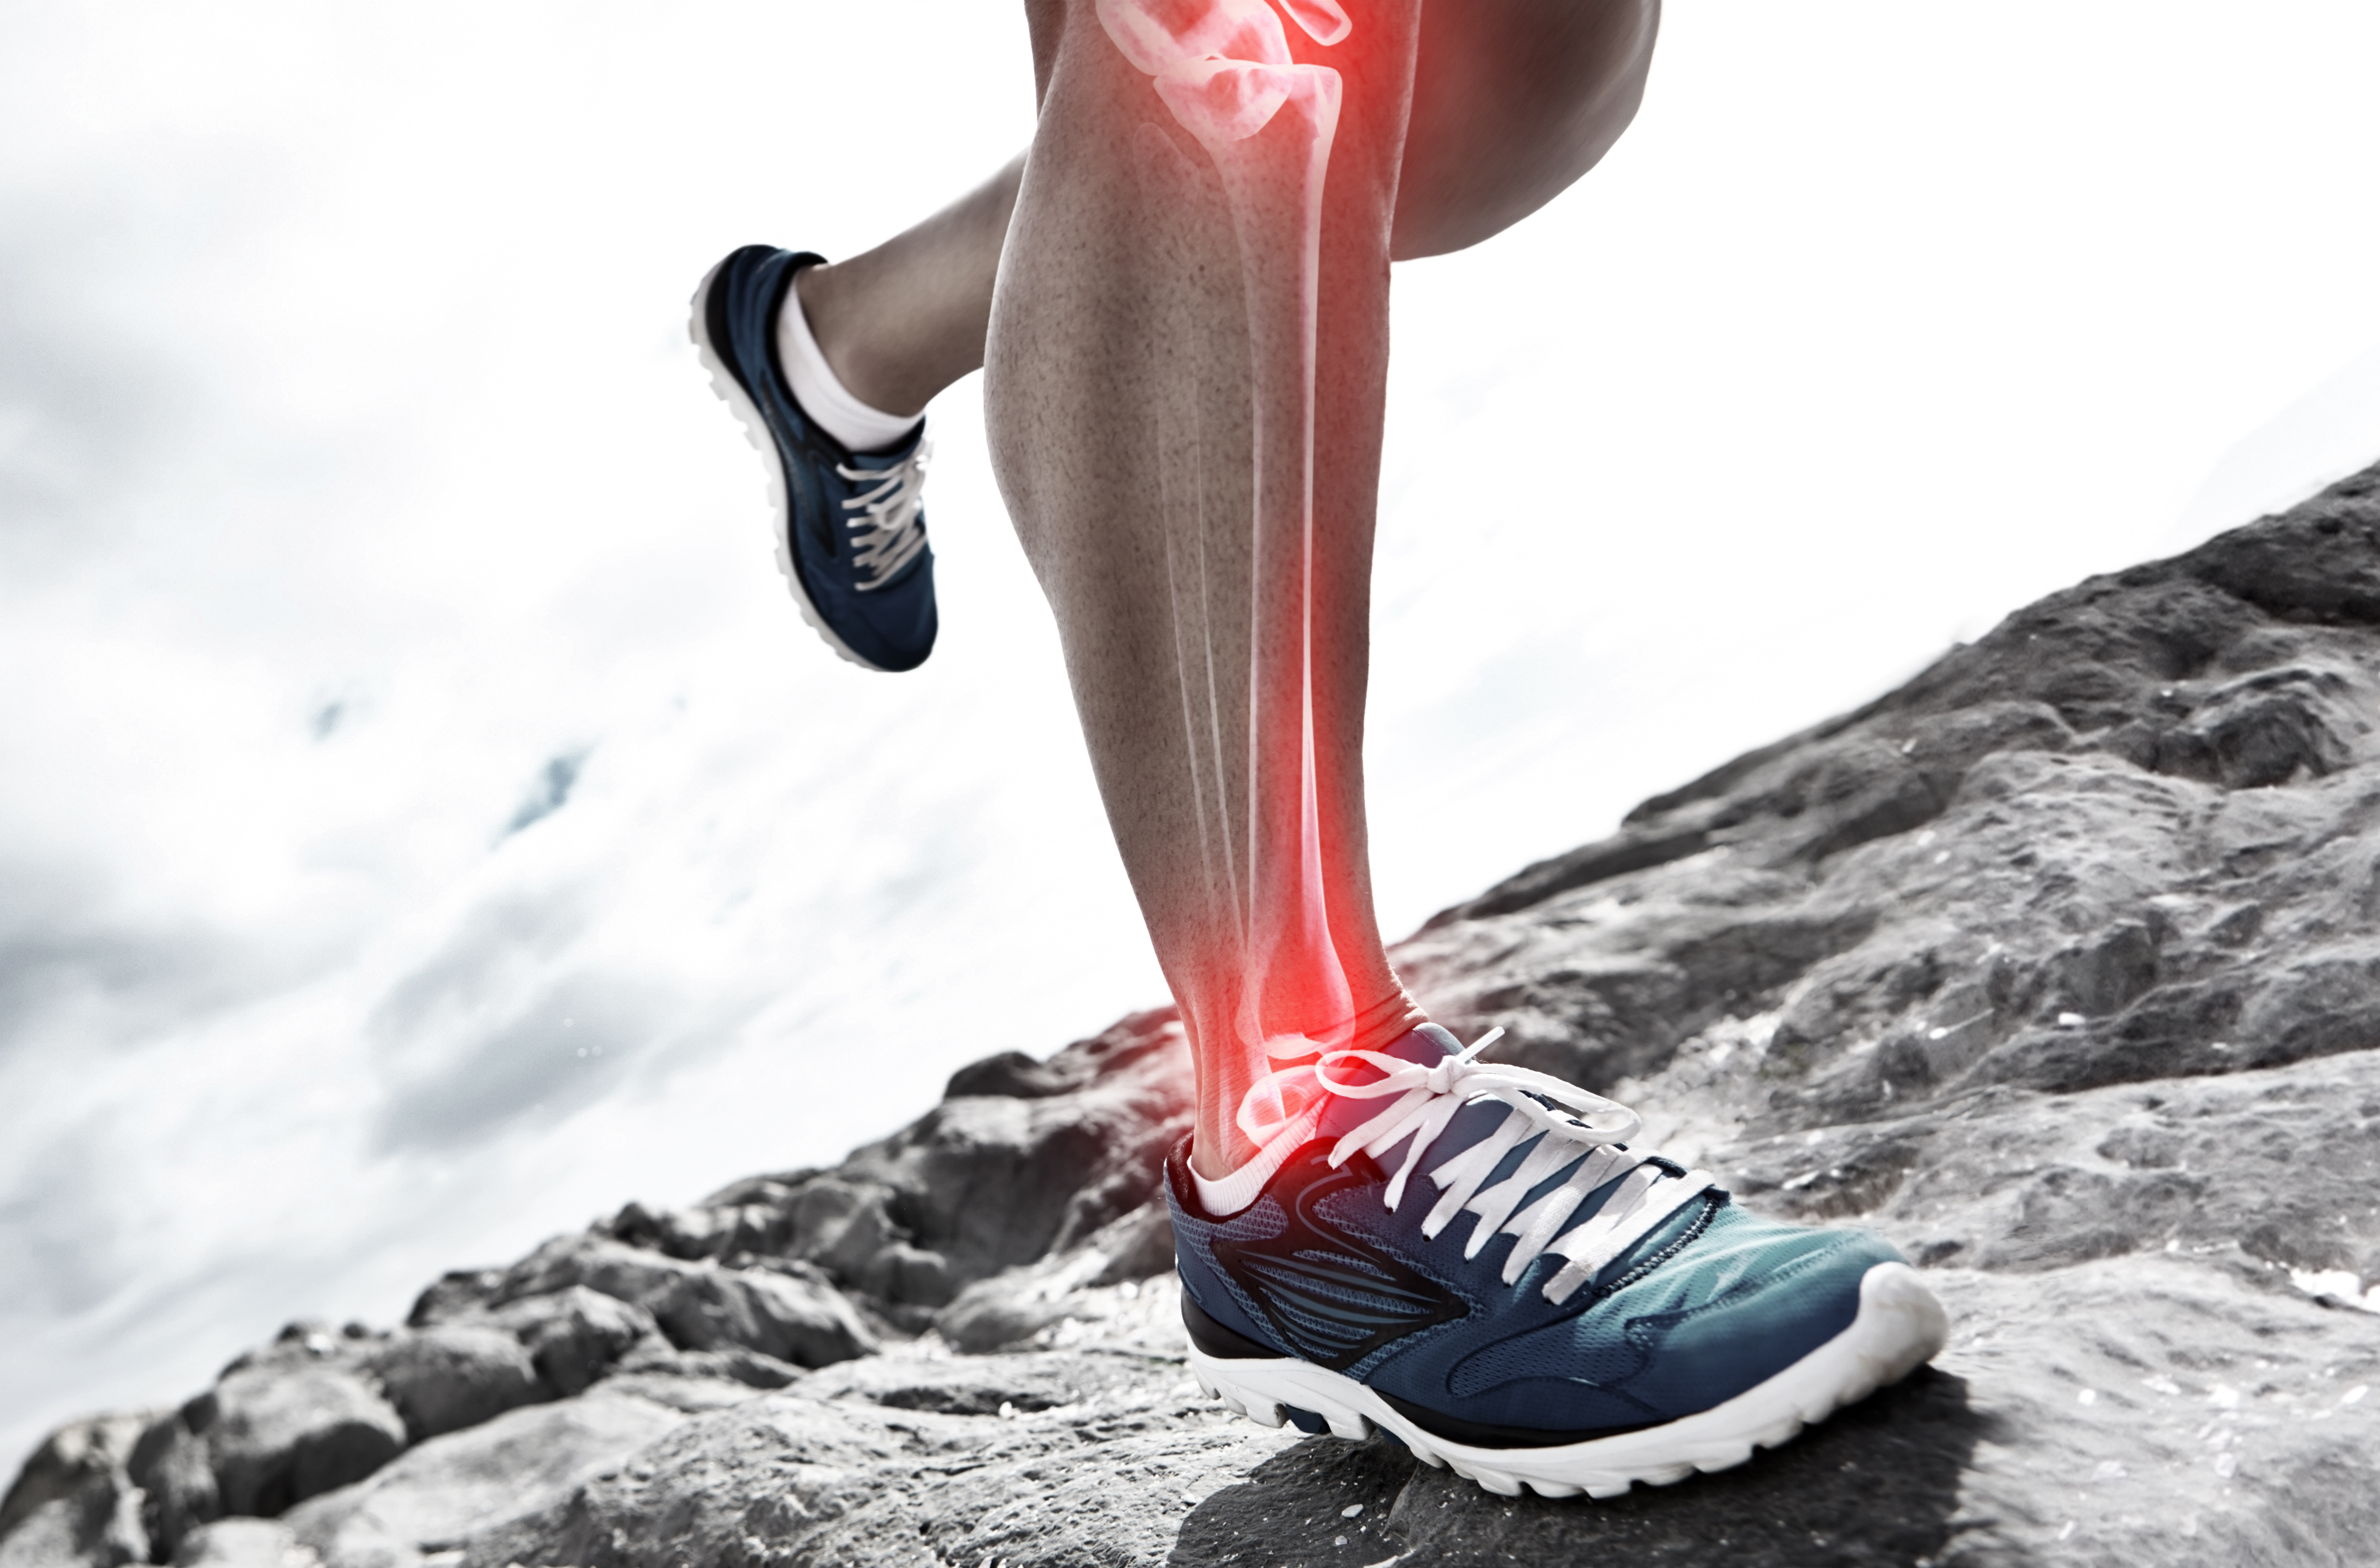 6 Things to Know About Shin Splints